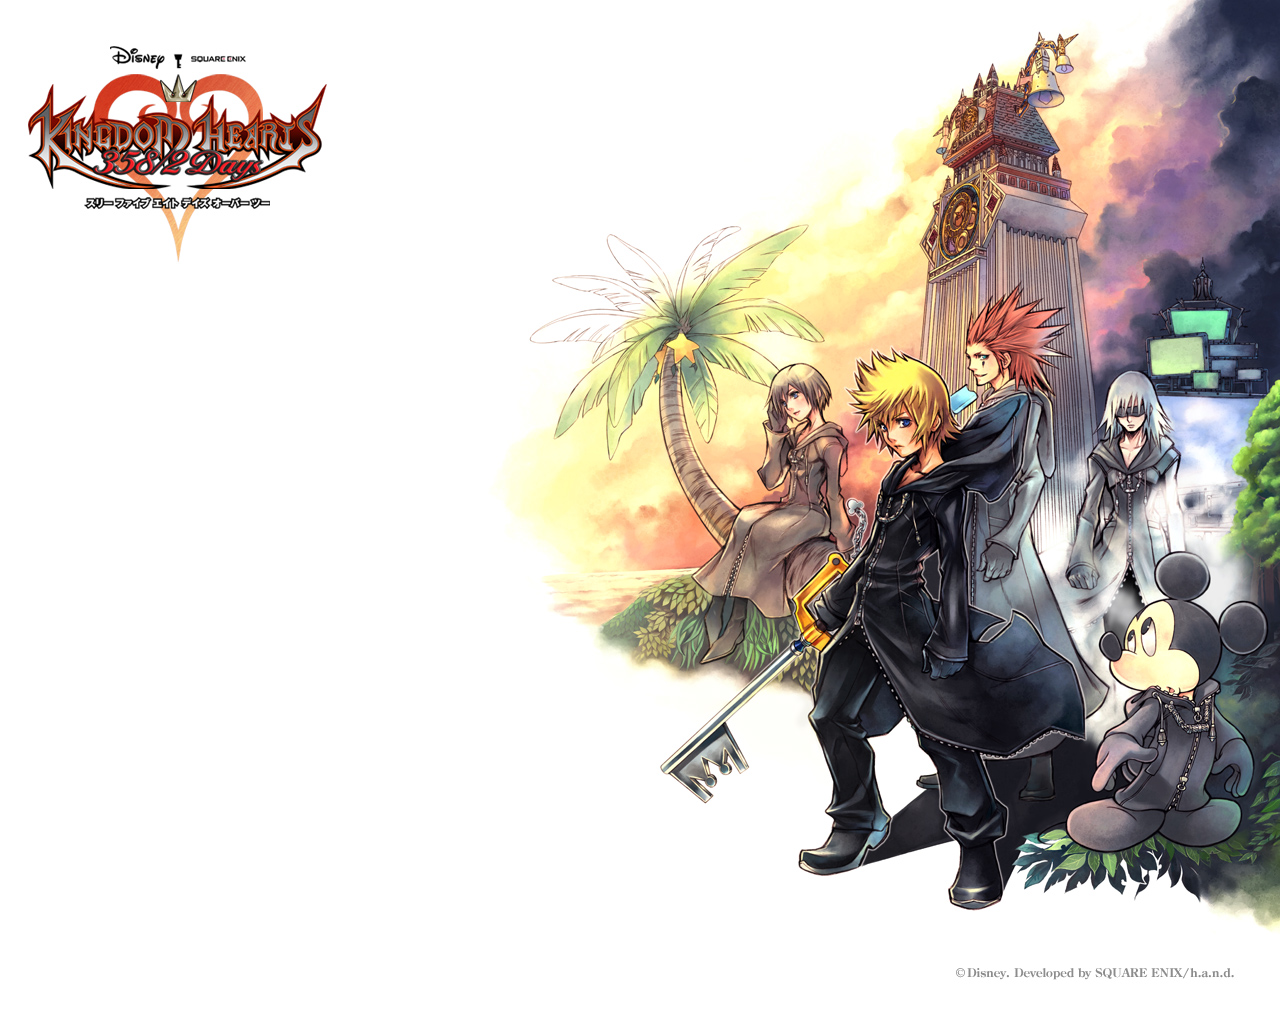 http://2.bp.blogspot.com/_qUL-JNX31co/S8u6h8pFX6I/AAAAAAAAAAk/n9Sw5mTmEbY/s1600/kingdom-hearts-358-1-2-days-wallpaper-cast-1280x1024.jpg